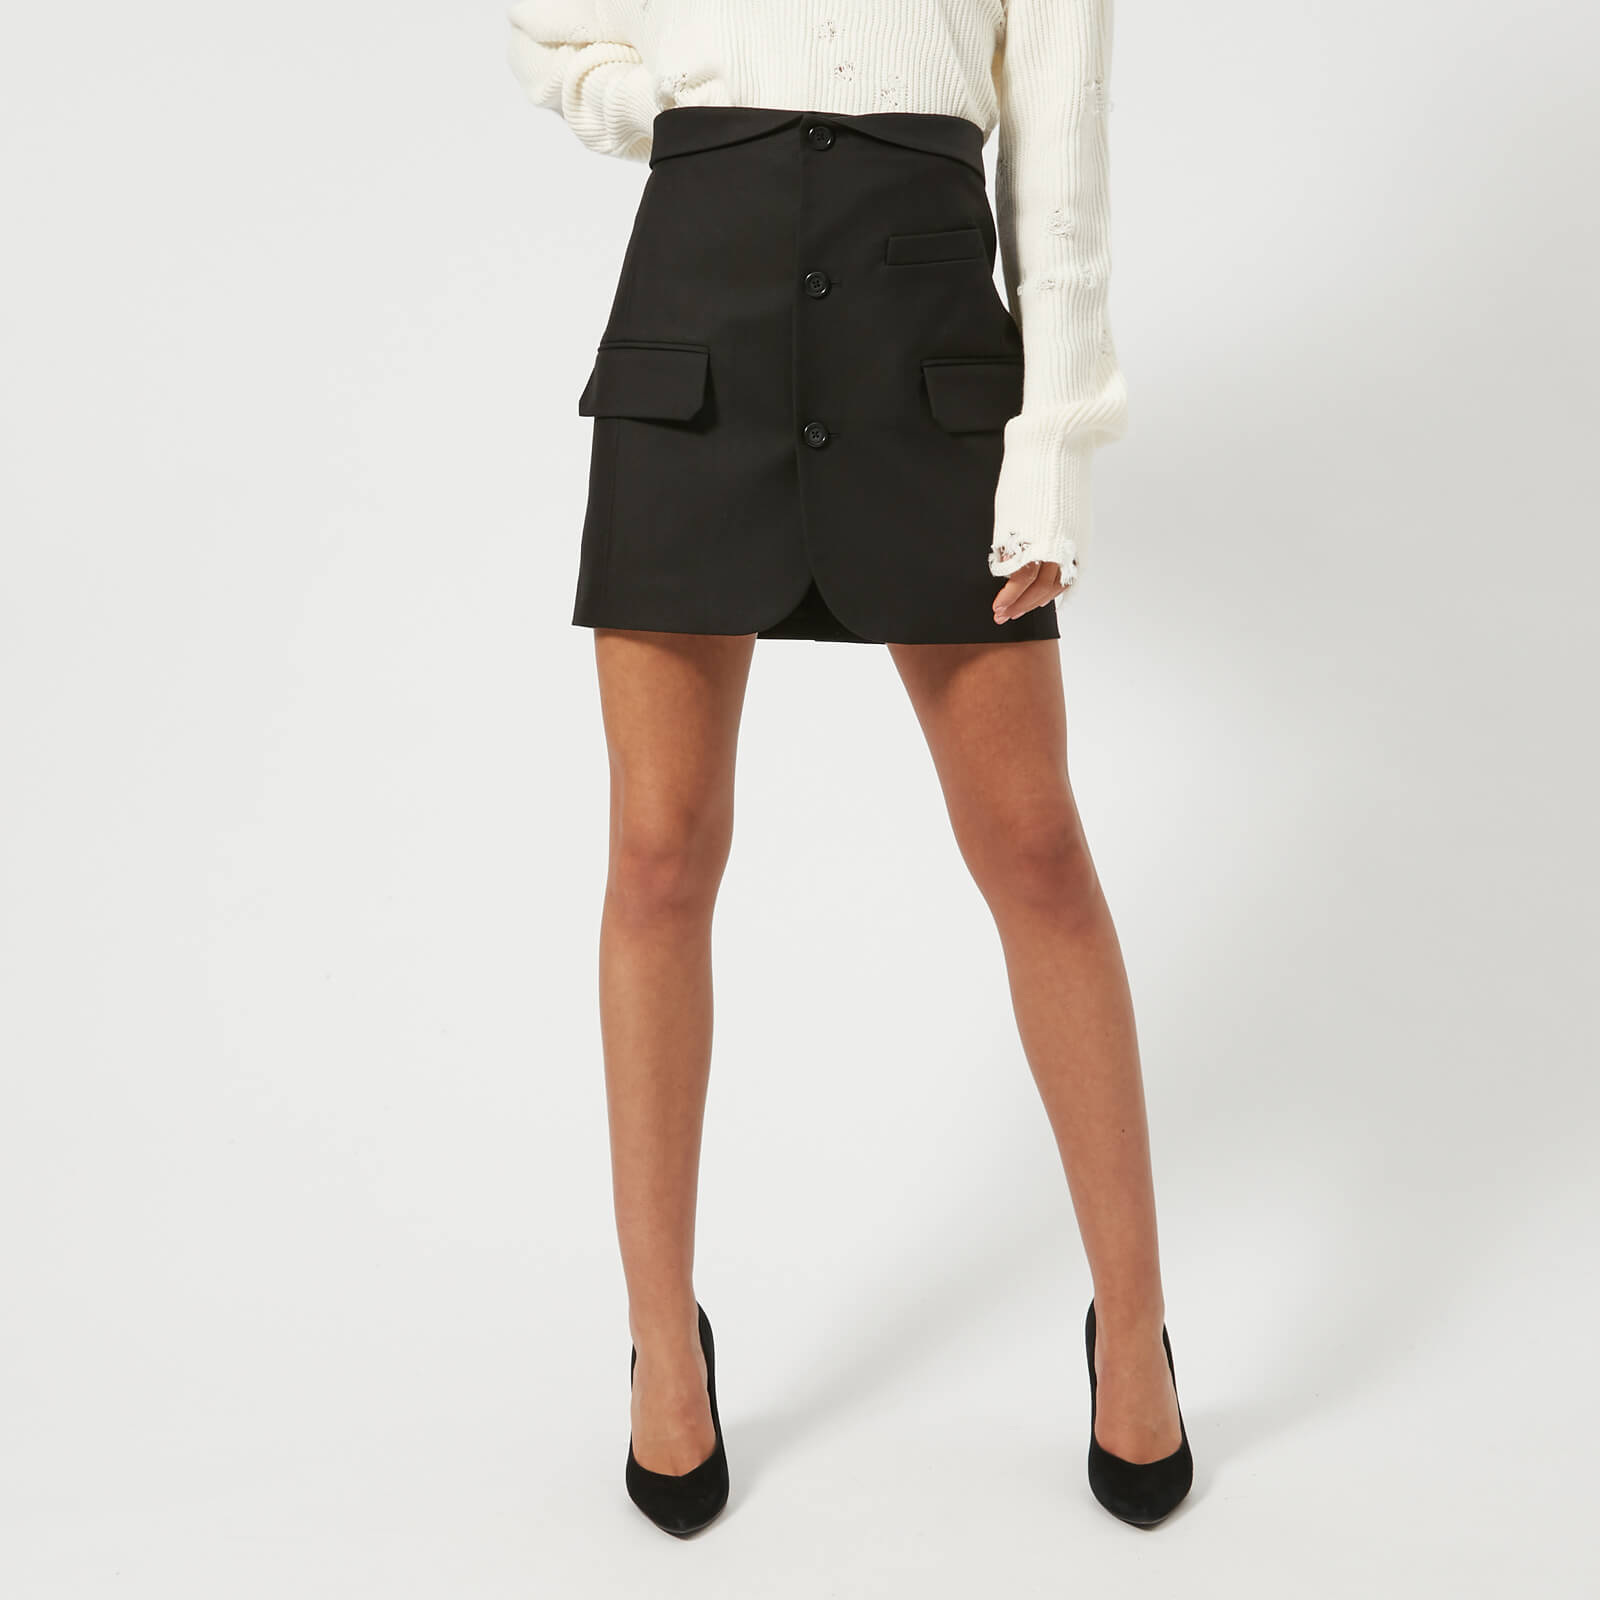 ccae34d01dfb Helmut Lang Women's Blazer Skirt - Black - Free UK Delivery over £50